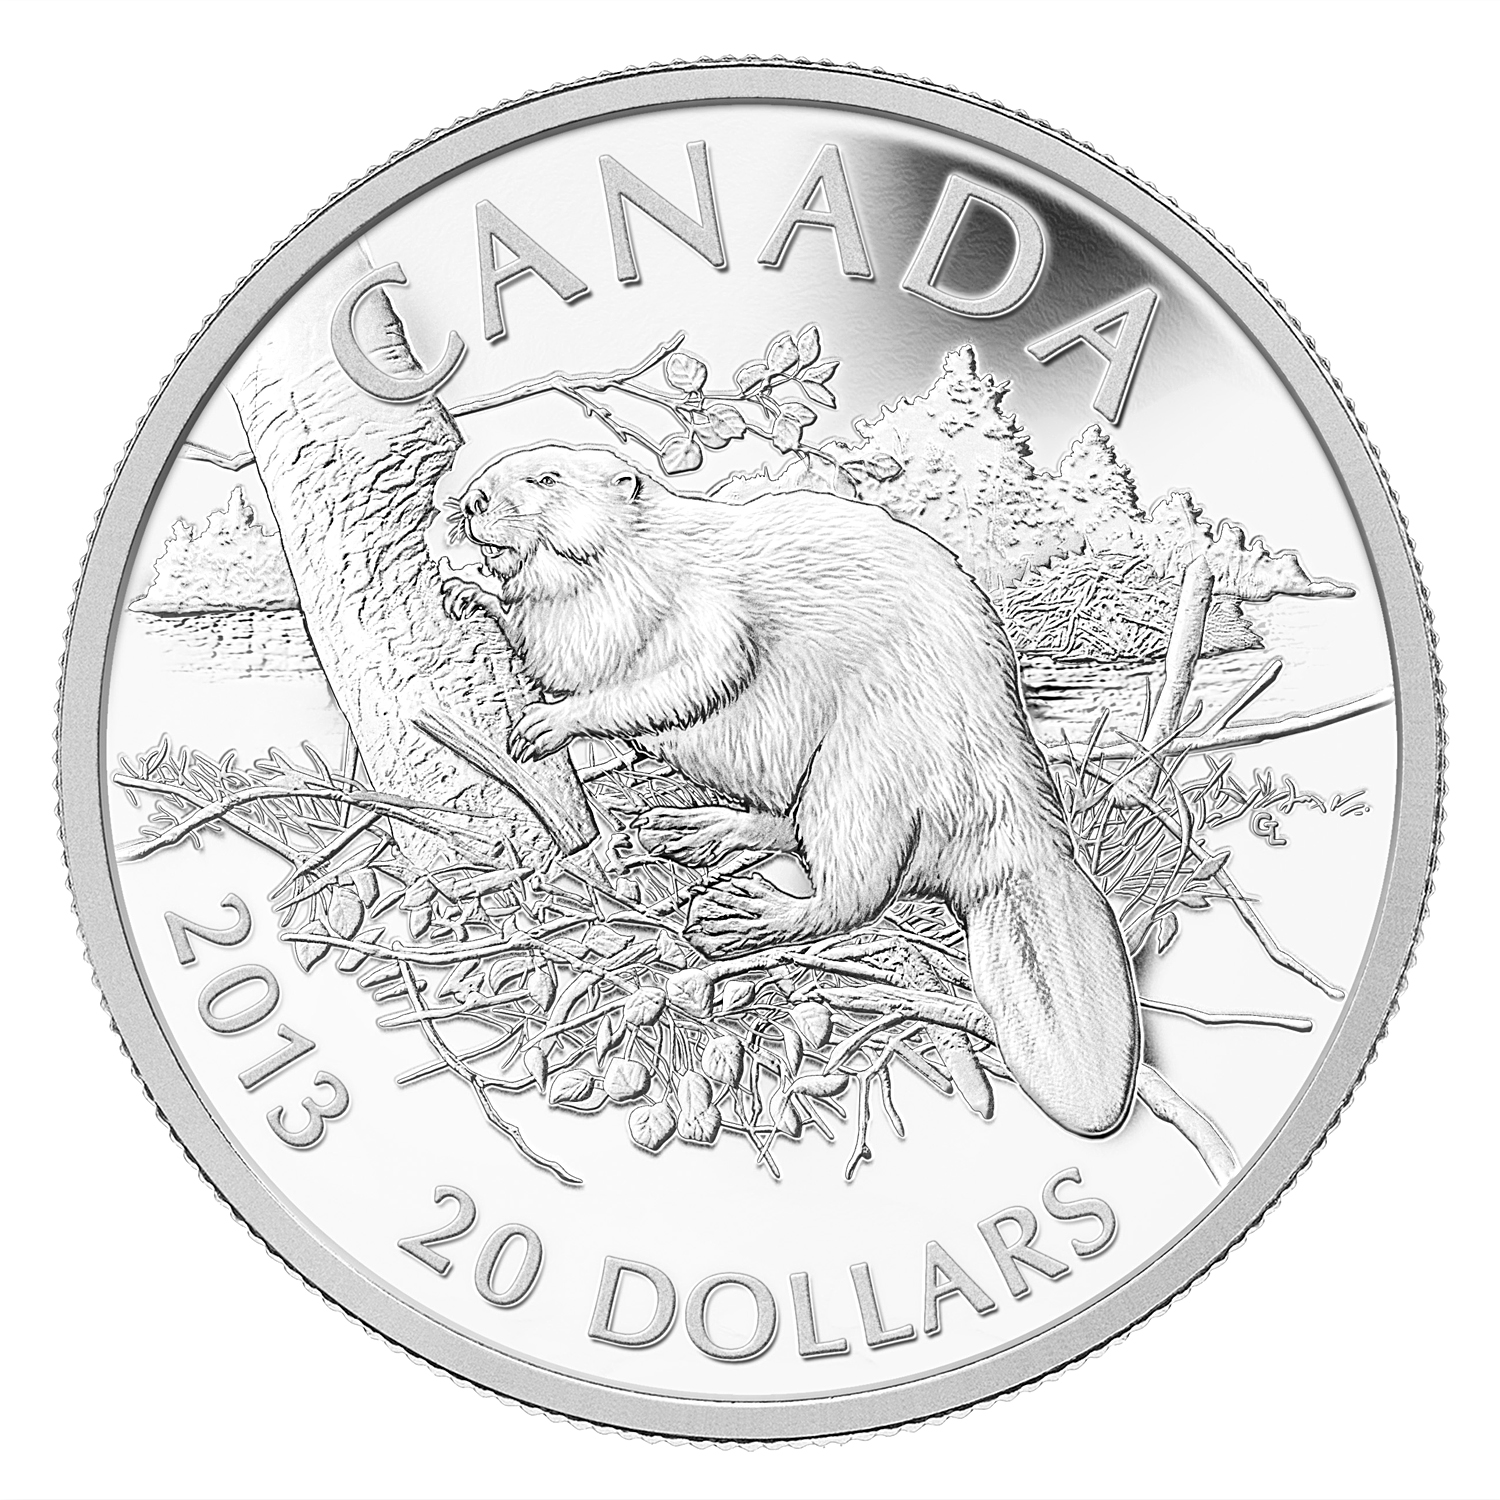 2013 1 oz Silver Canadian $20 Coin - The Beaver